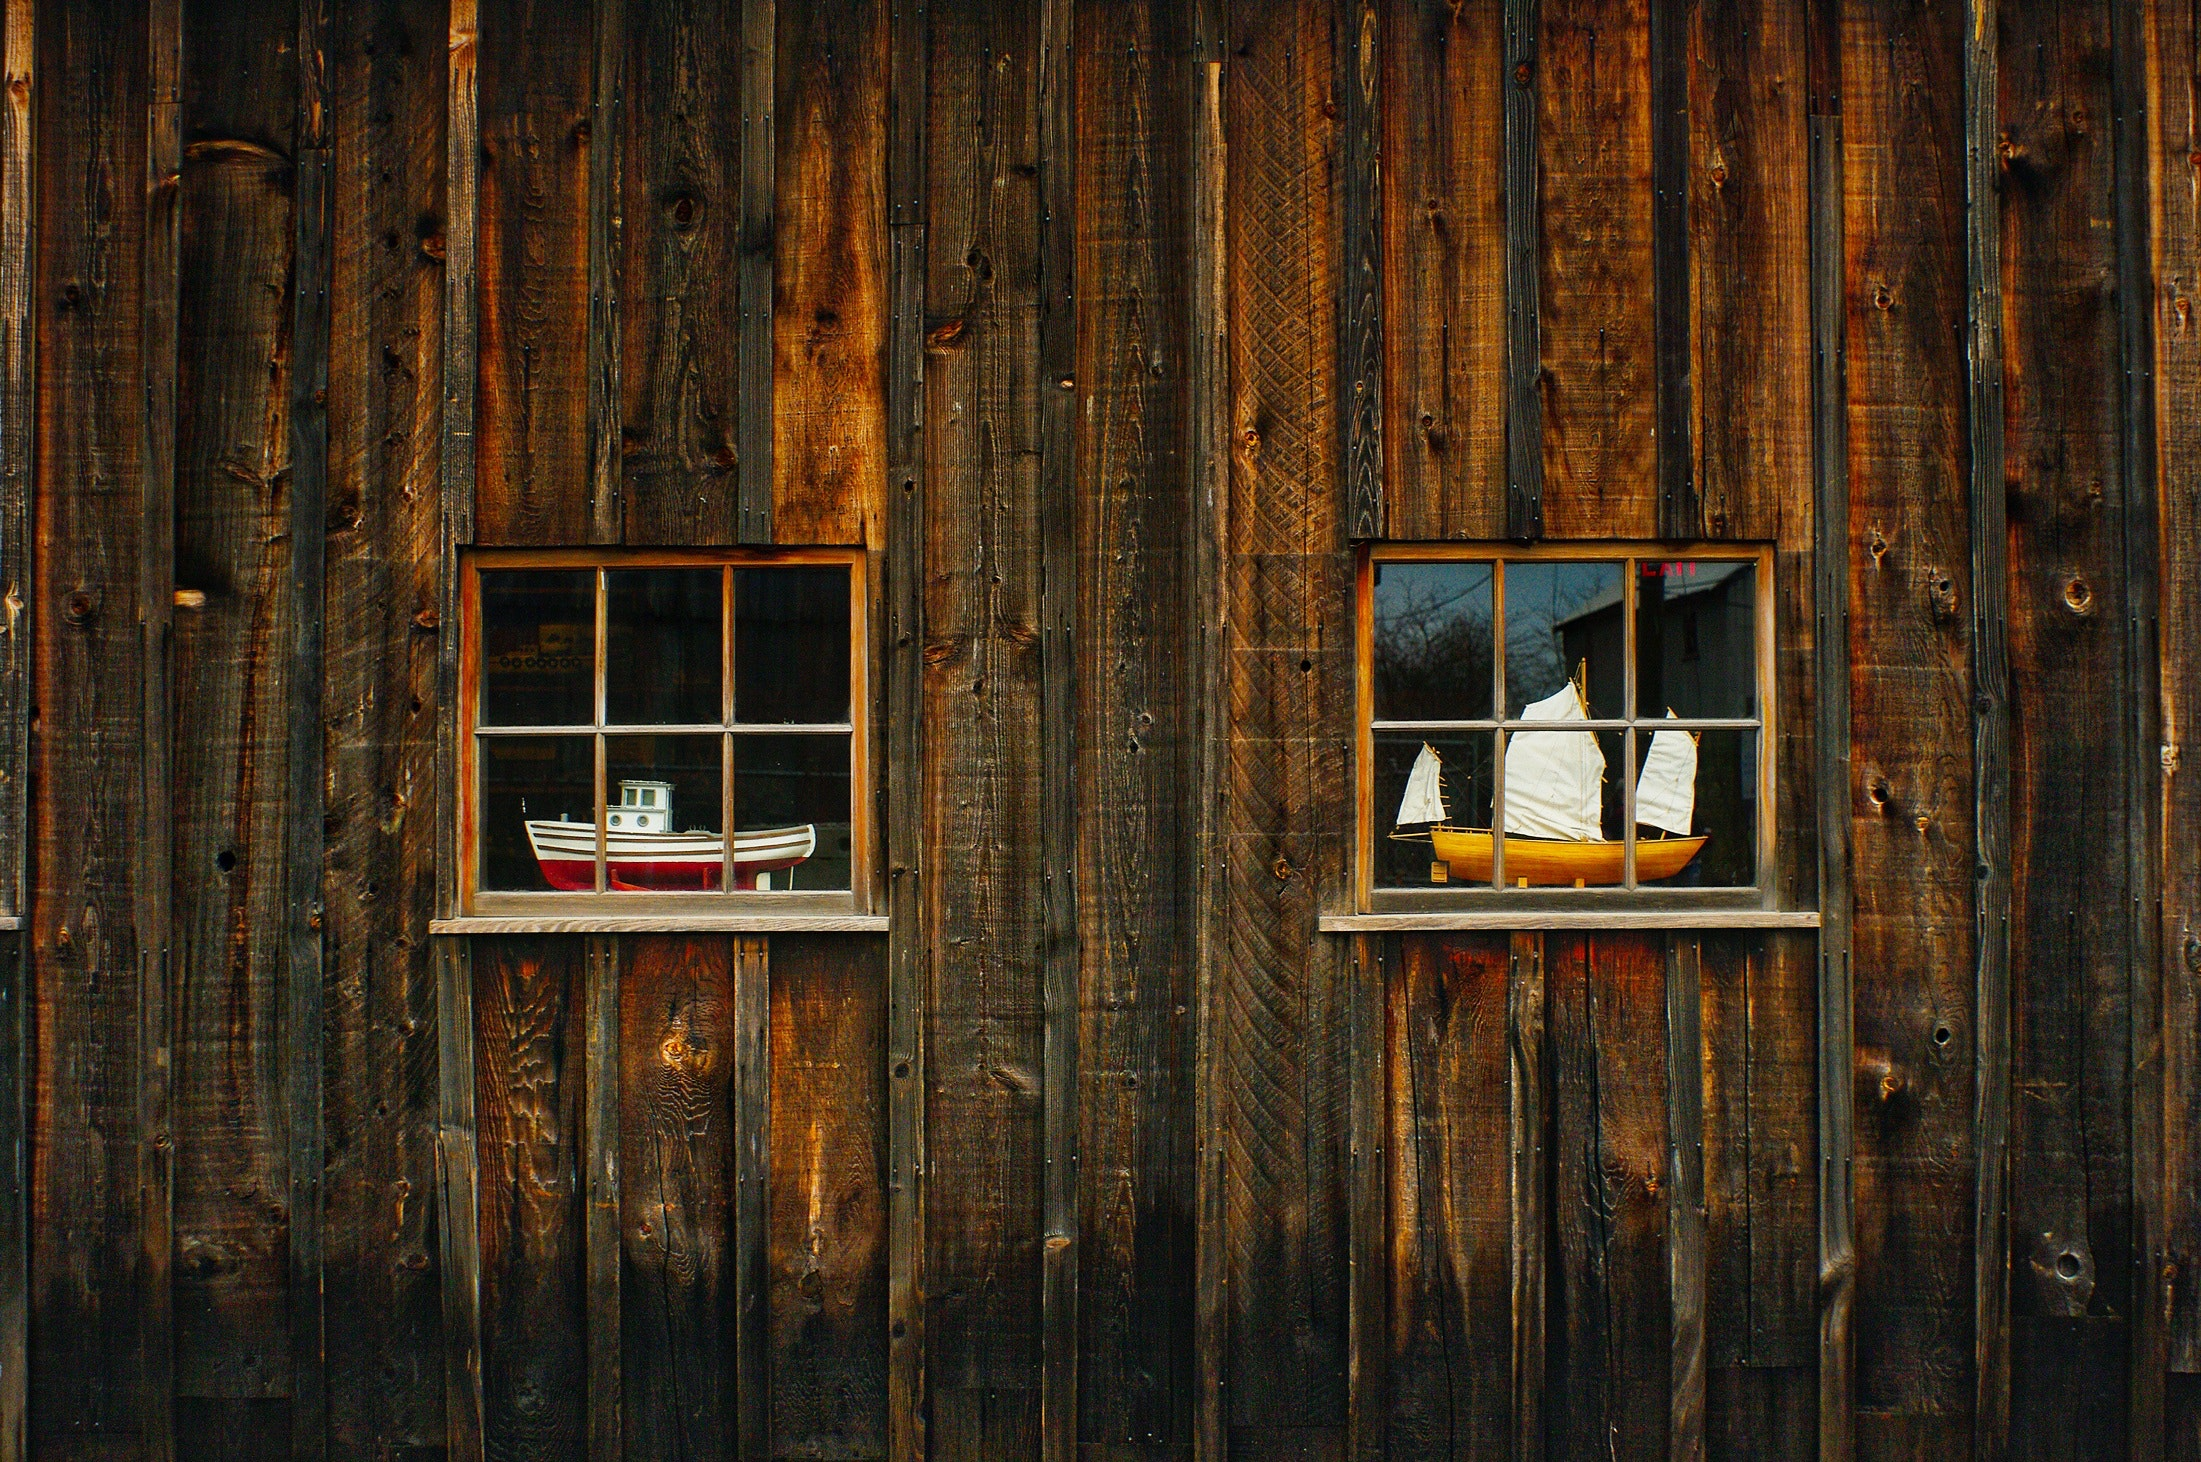 Closed Wooden Door, Architecture, Art, Boats, Cabin, HQ Photo